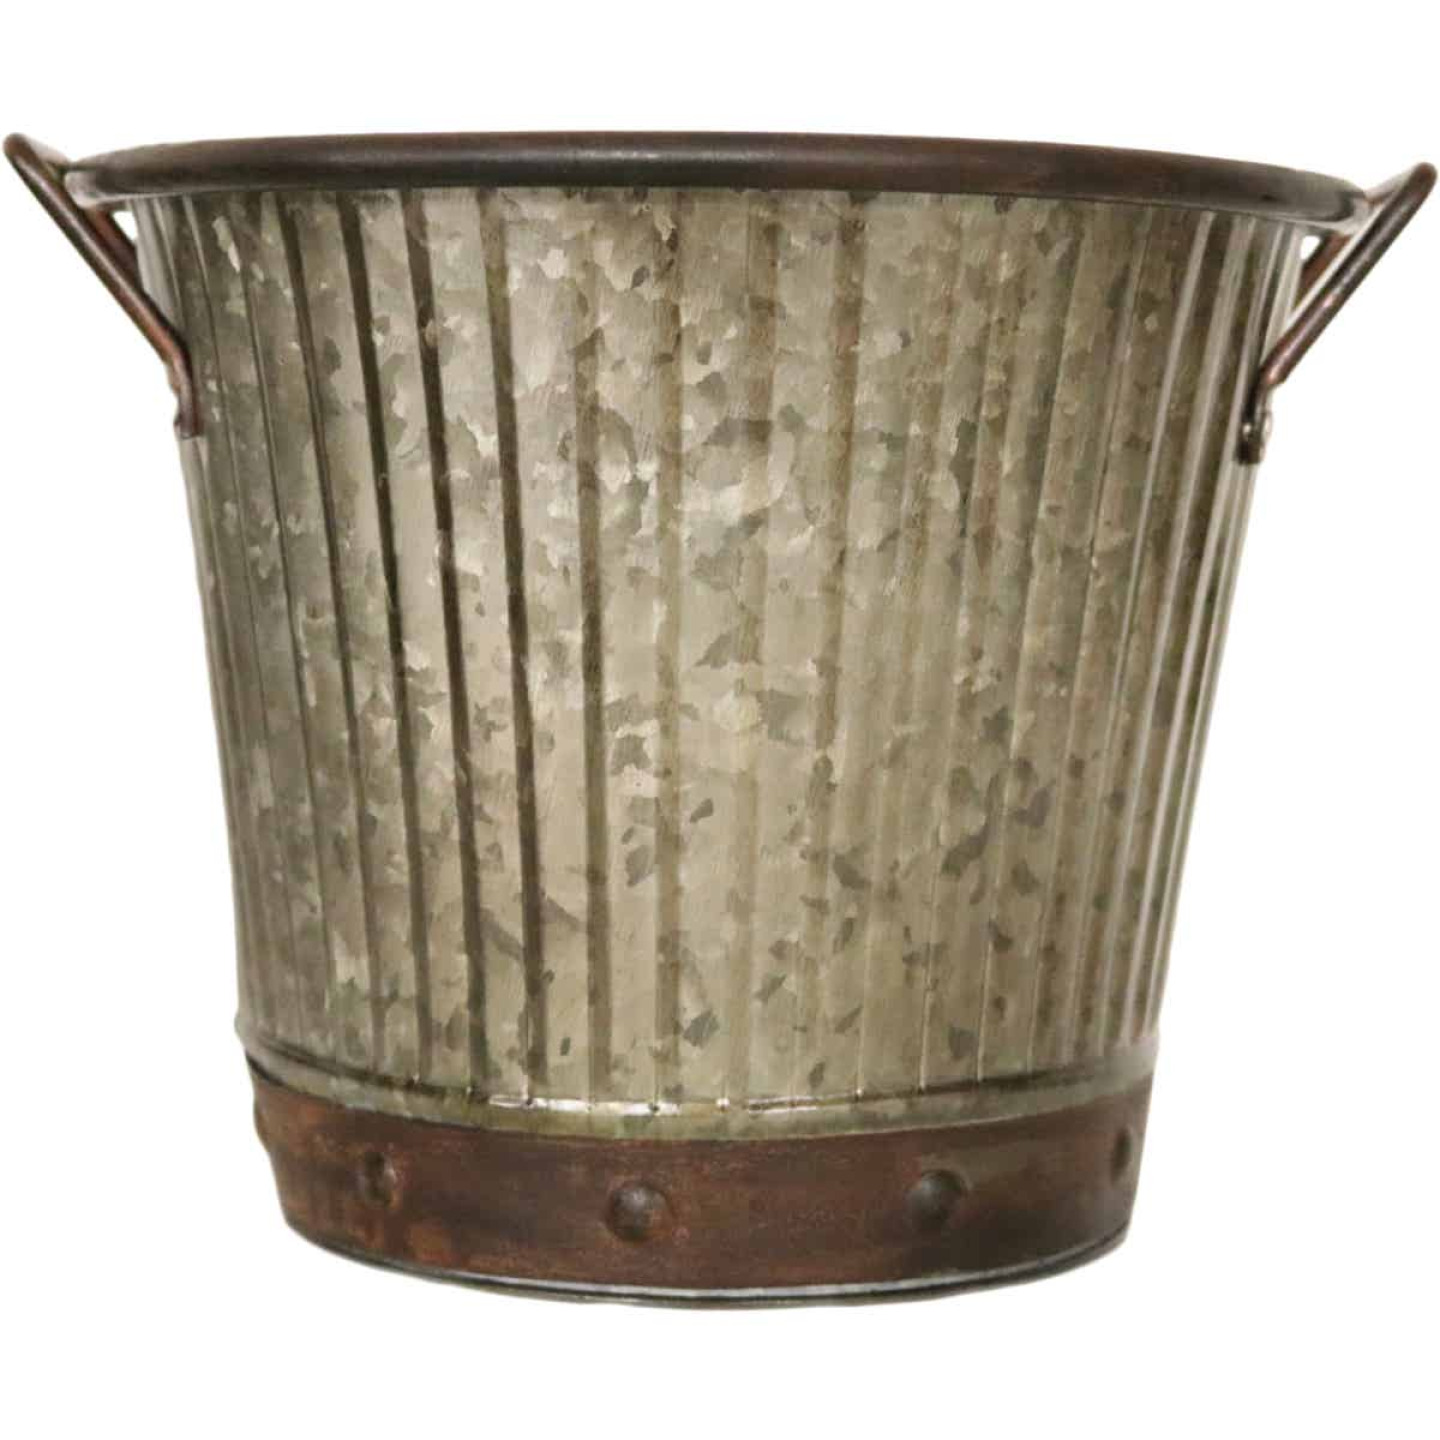 Robert Allen 7 In. x 8.5 In. x 8.5 In. Metal Aged Mocha Washboard Planter Image 1